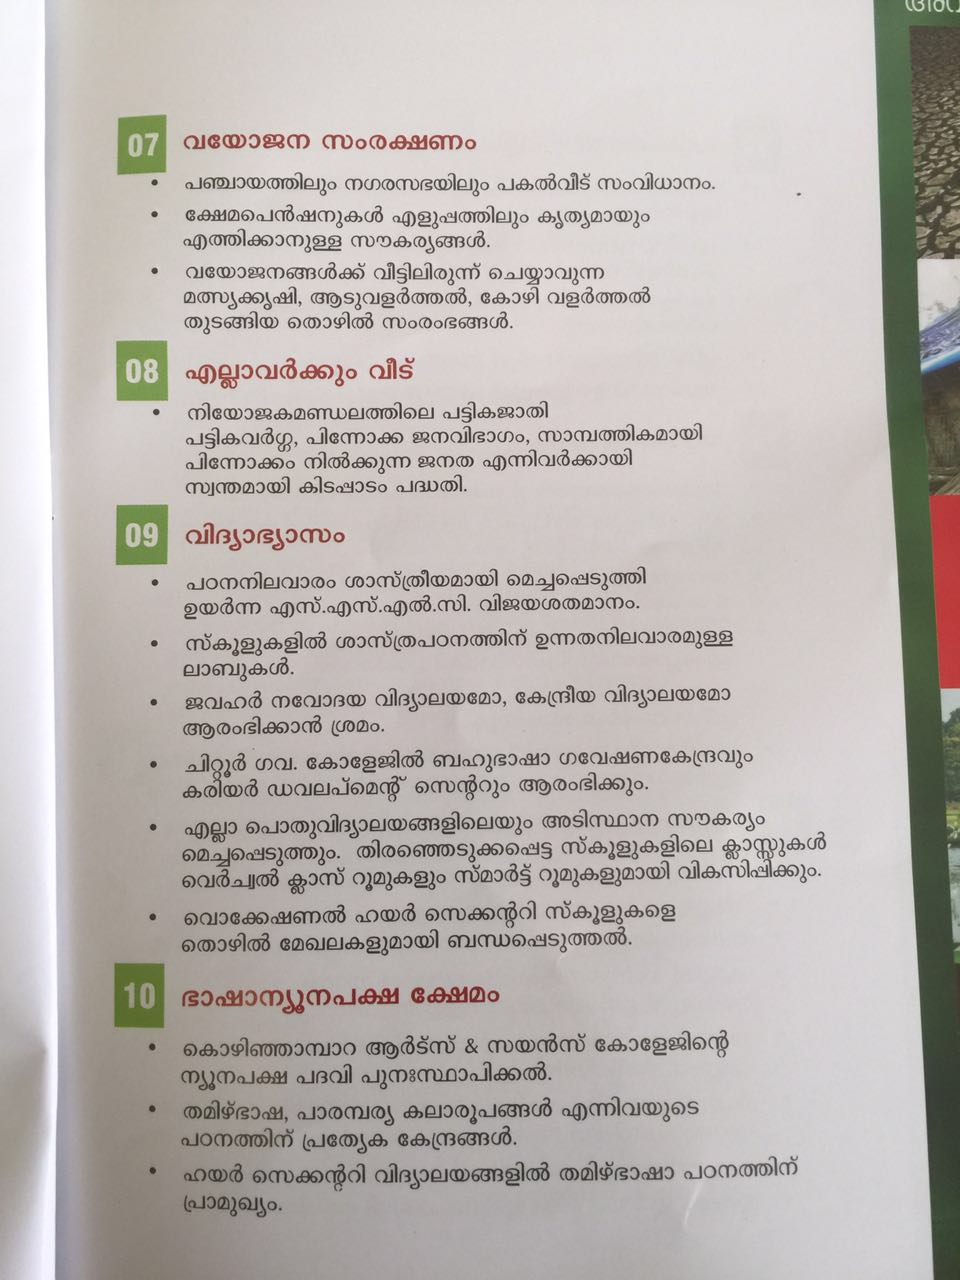 2016 election manifesto of K KRishnan kutty Chittur Palakkad